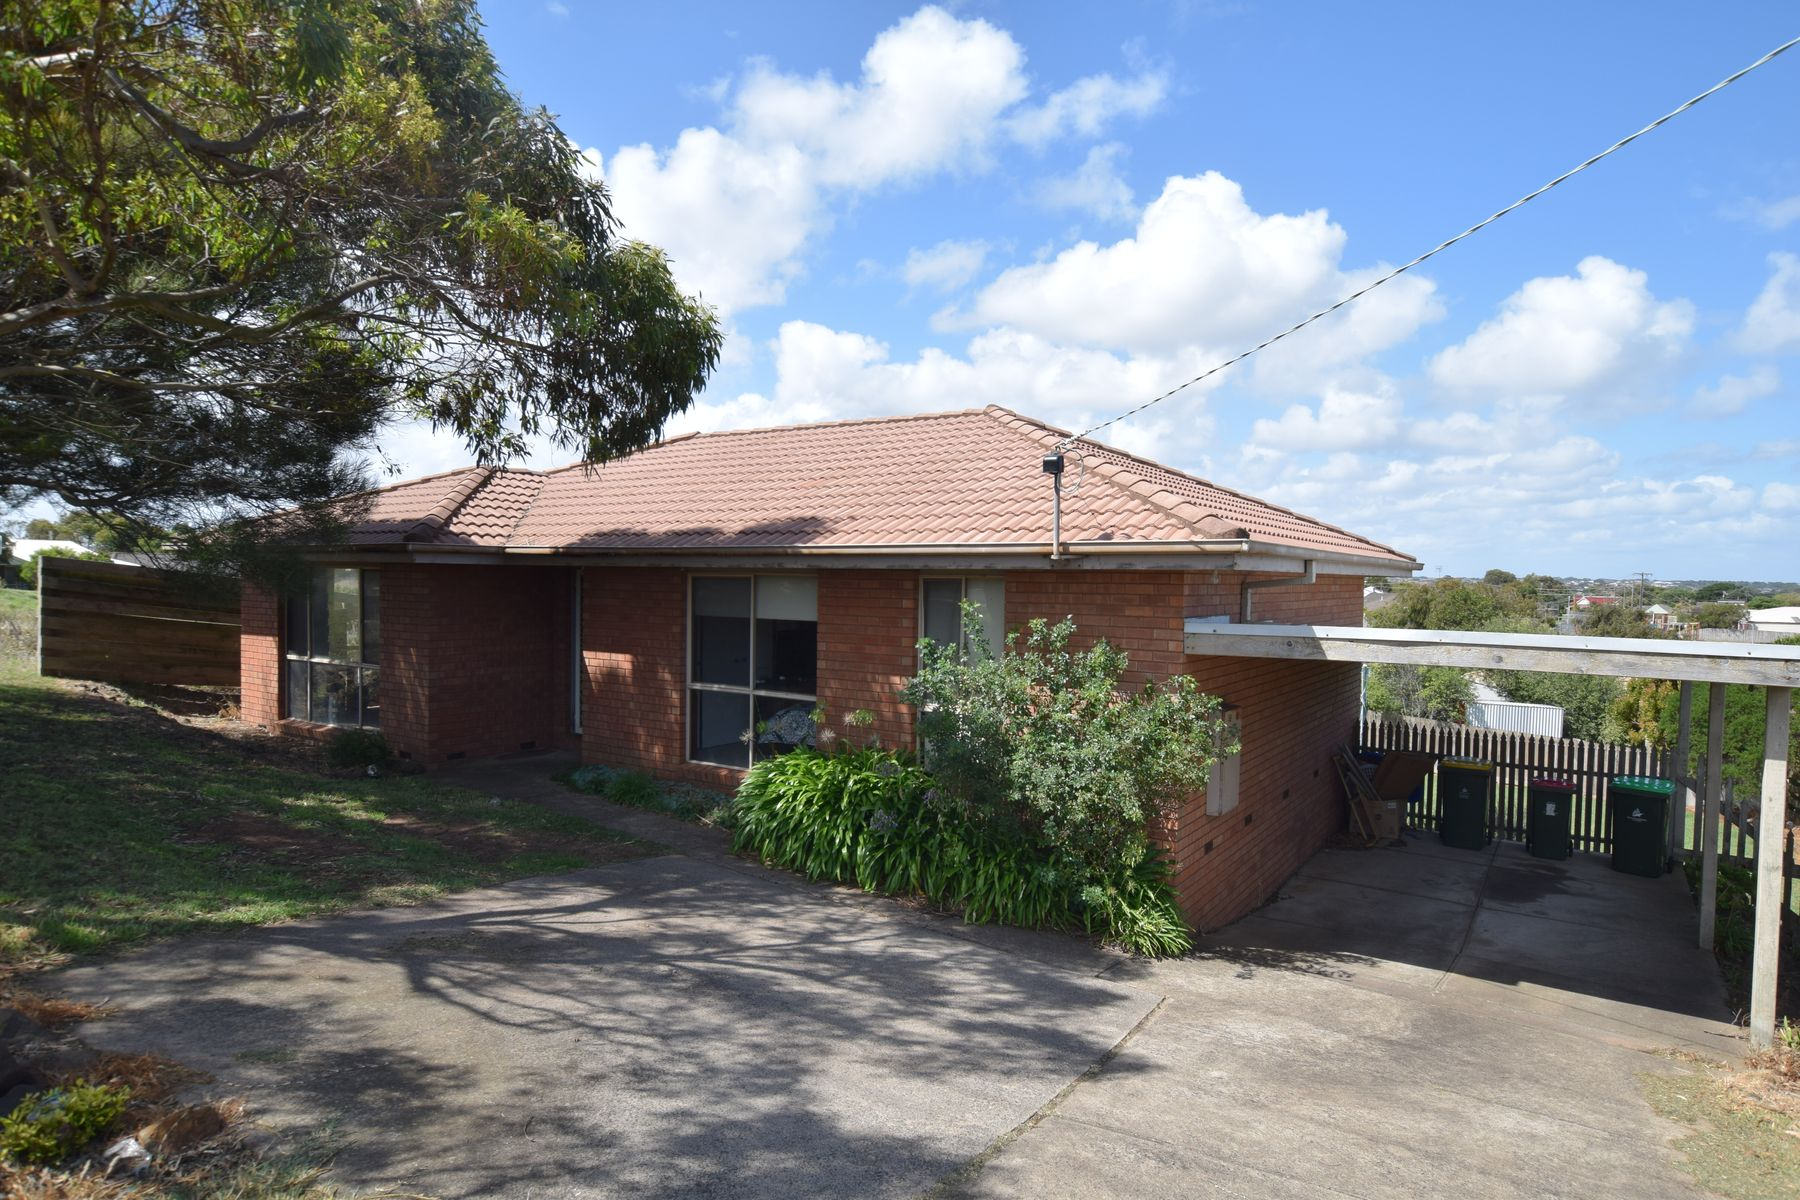 40 Laverock Road, Warrnambool, VIC 3280